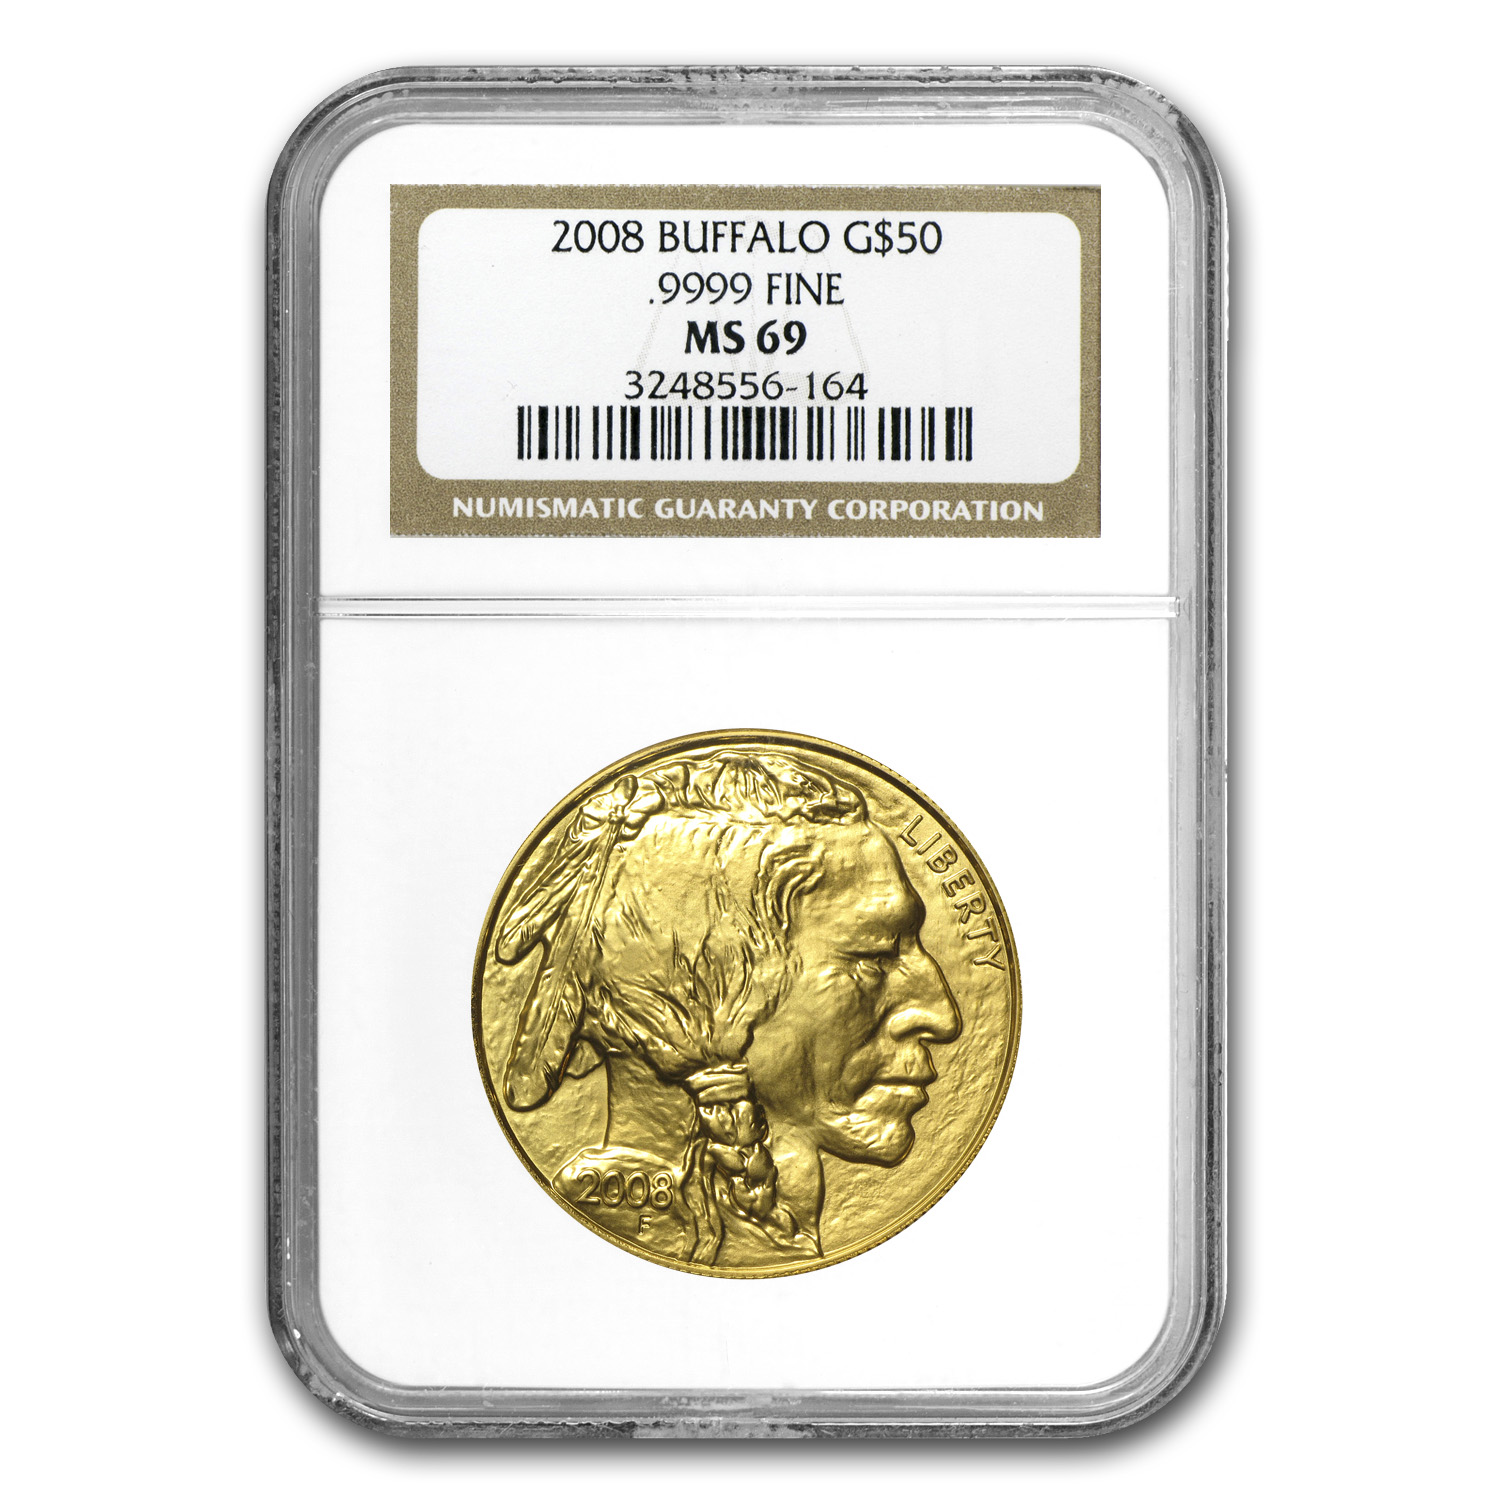 2008 1 oz Gold Buffalo MS-69 NGC